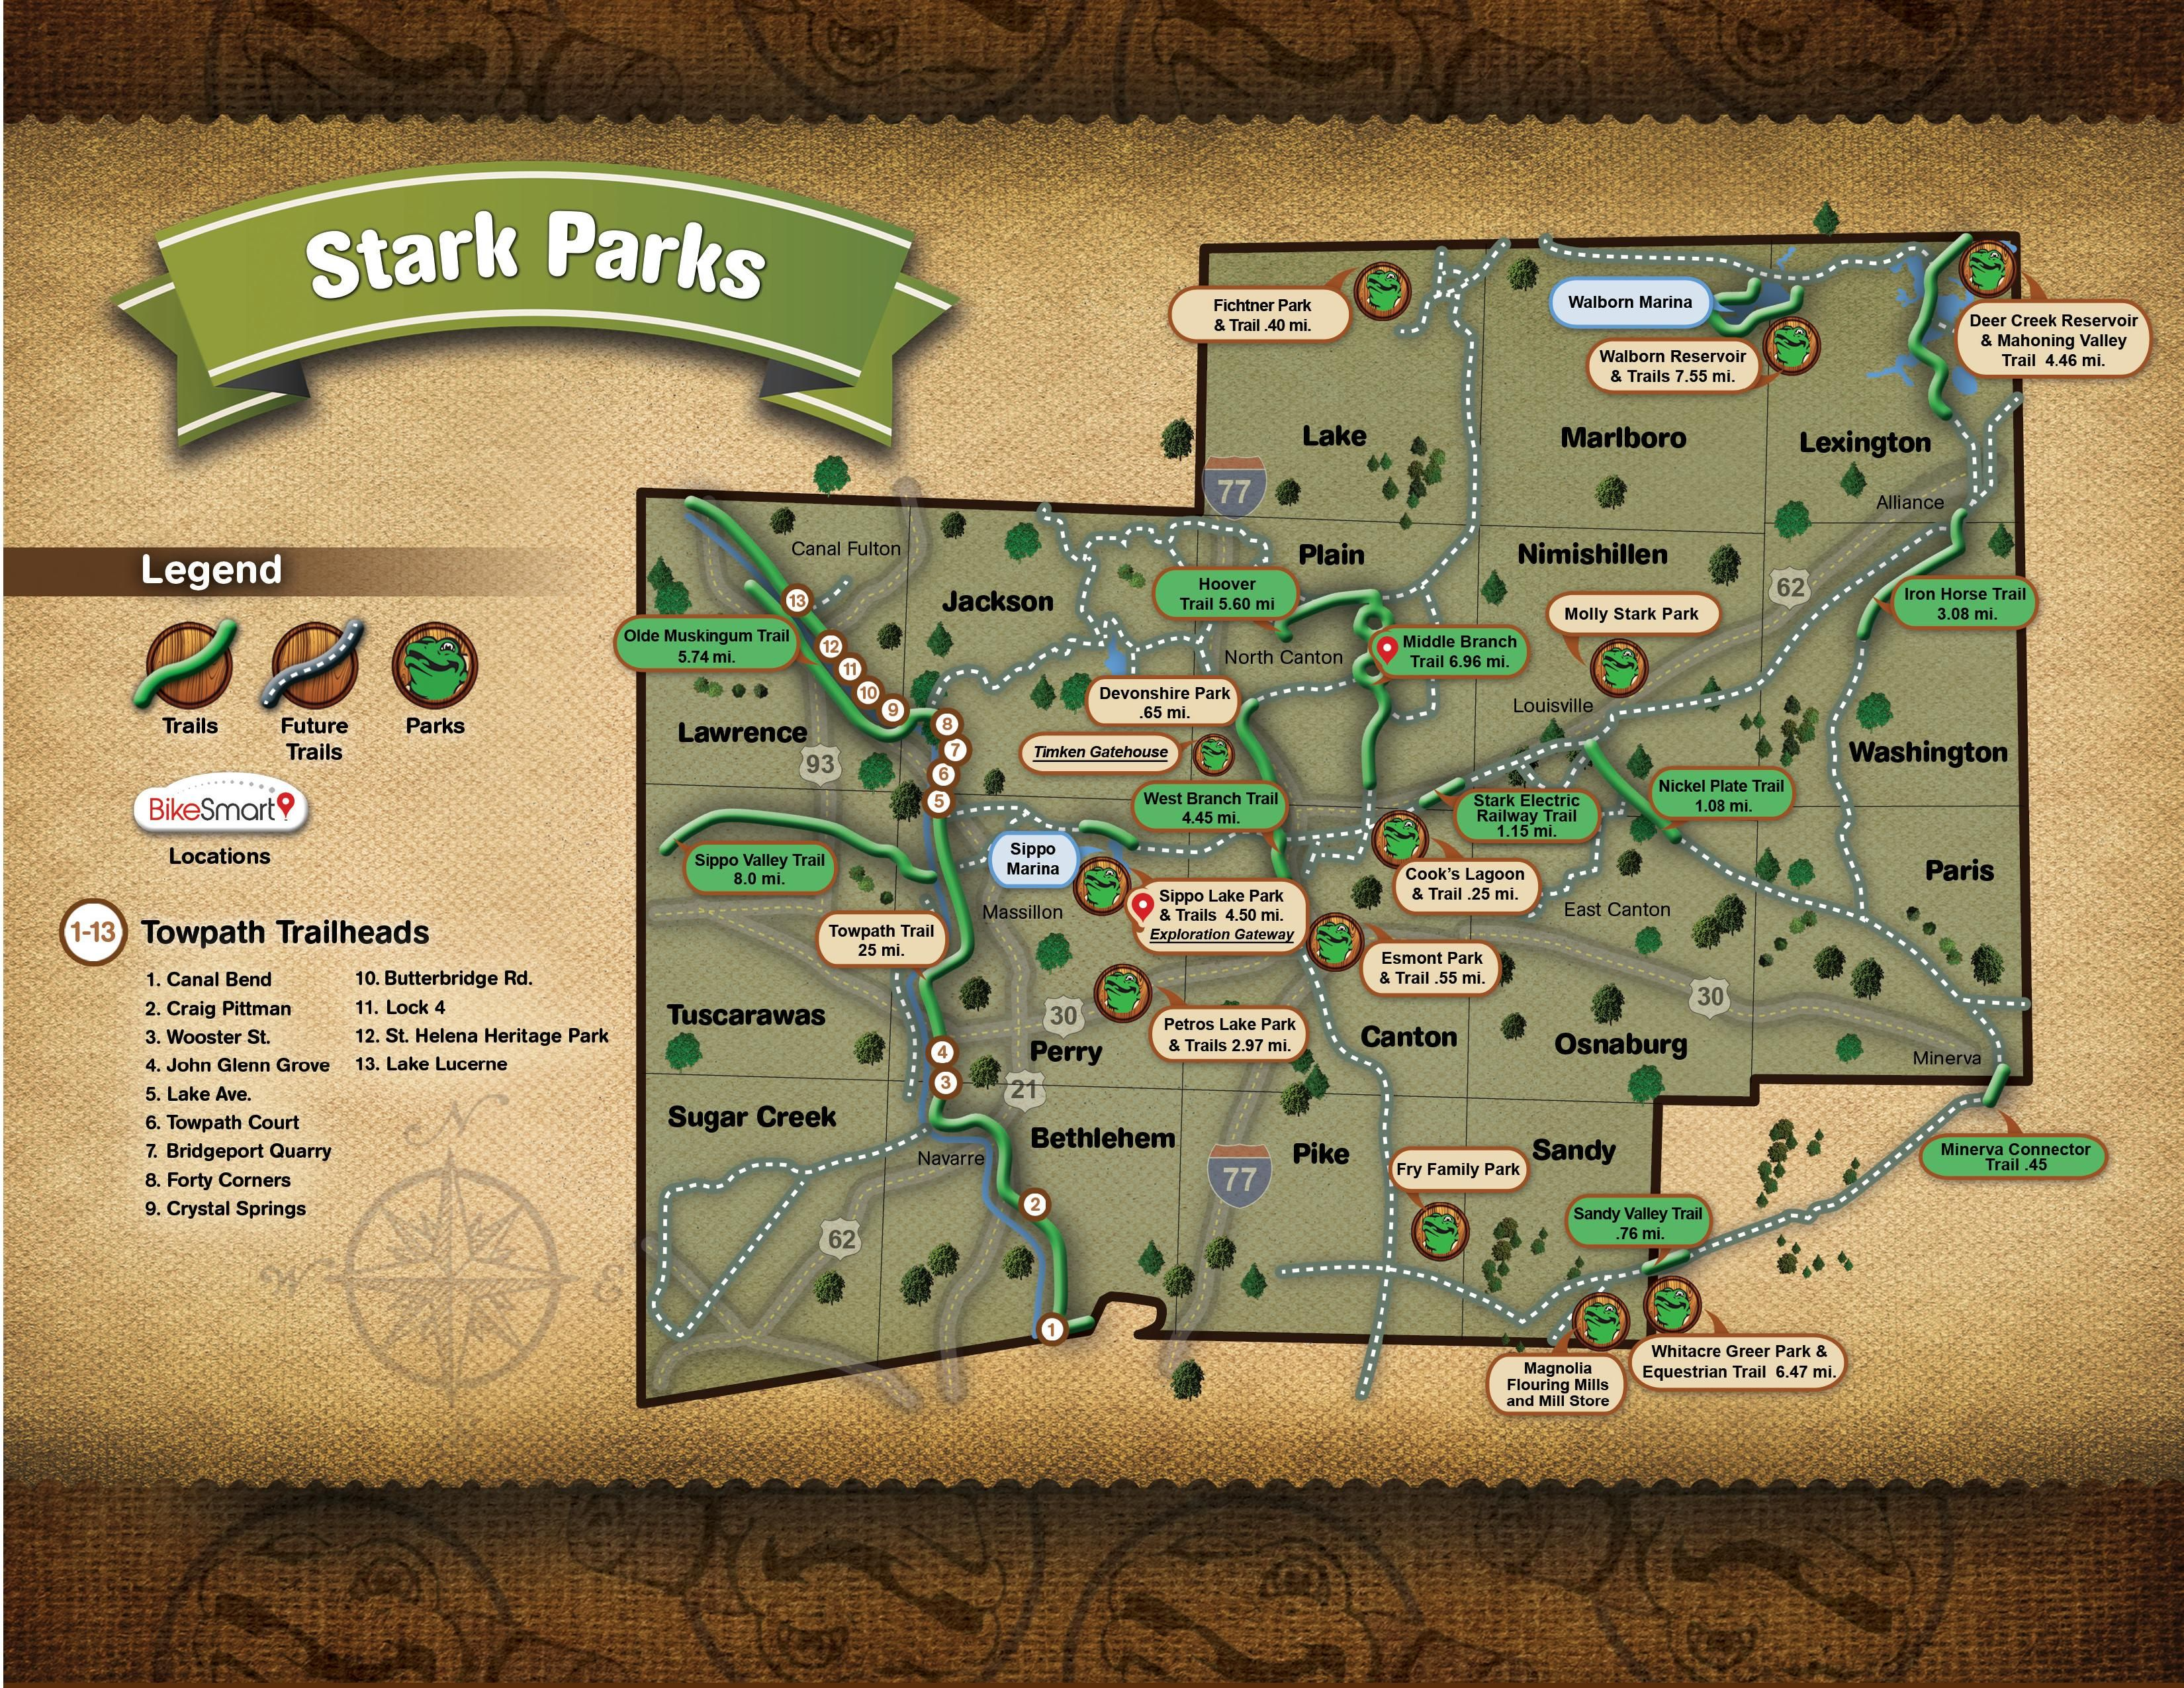 View the full starkparks map and trail